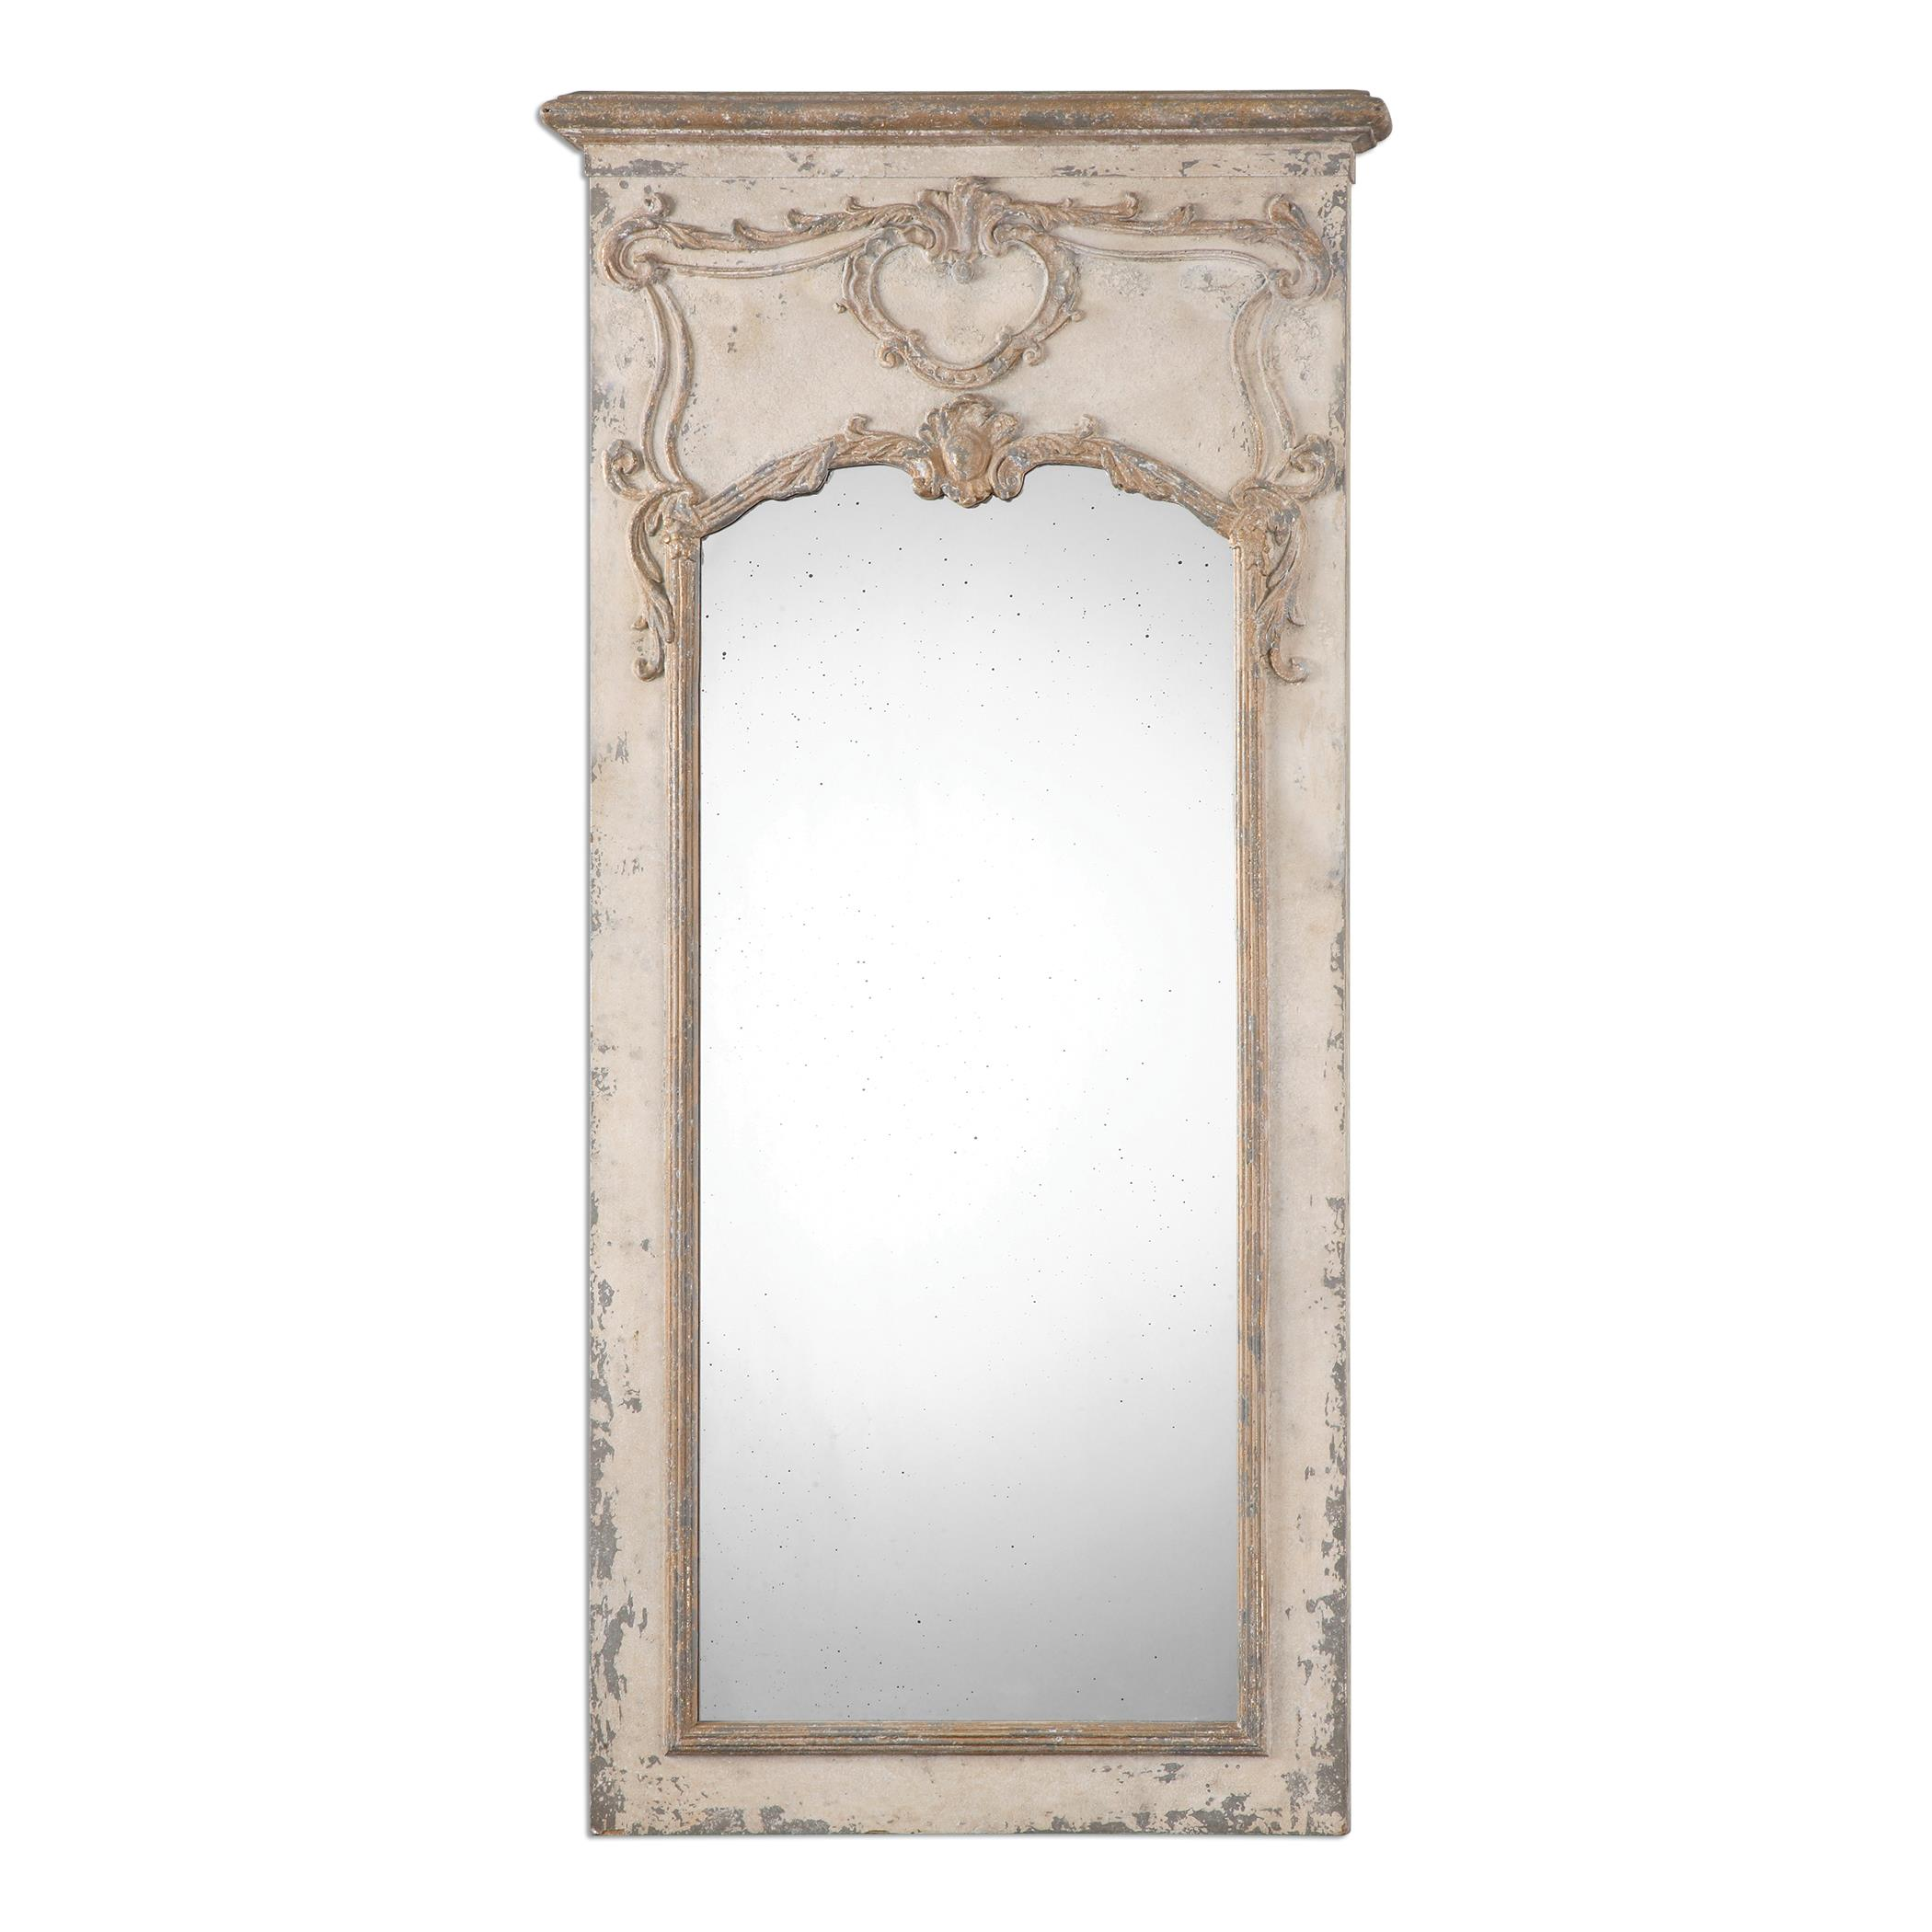 Uttermost Mirrors Carlazzo Antiqued White Mirror - Item Number: 13988